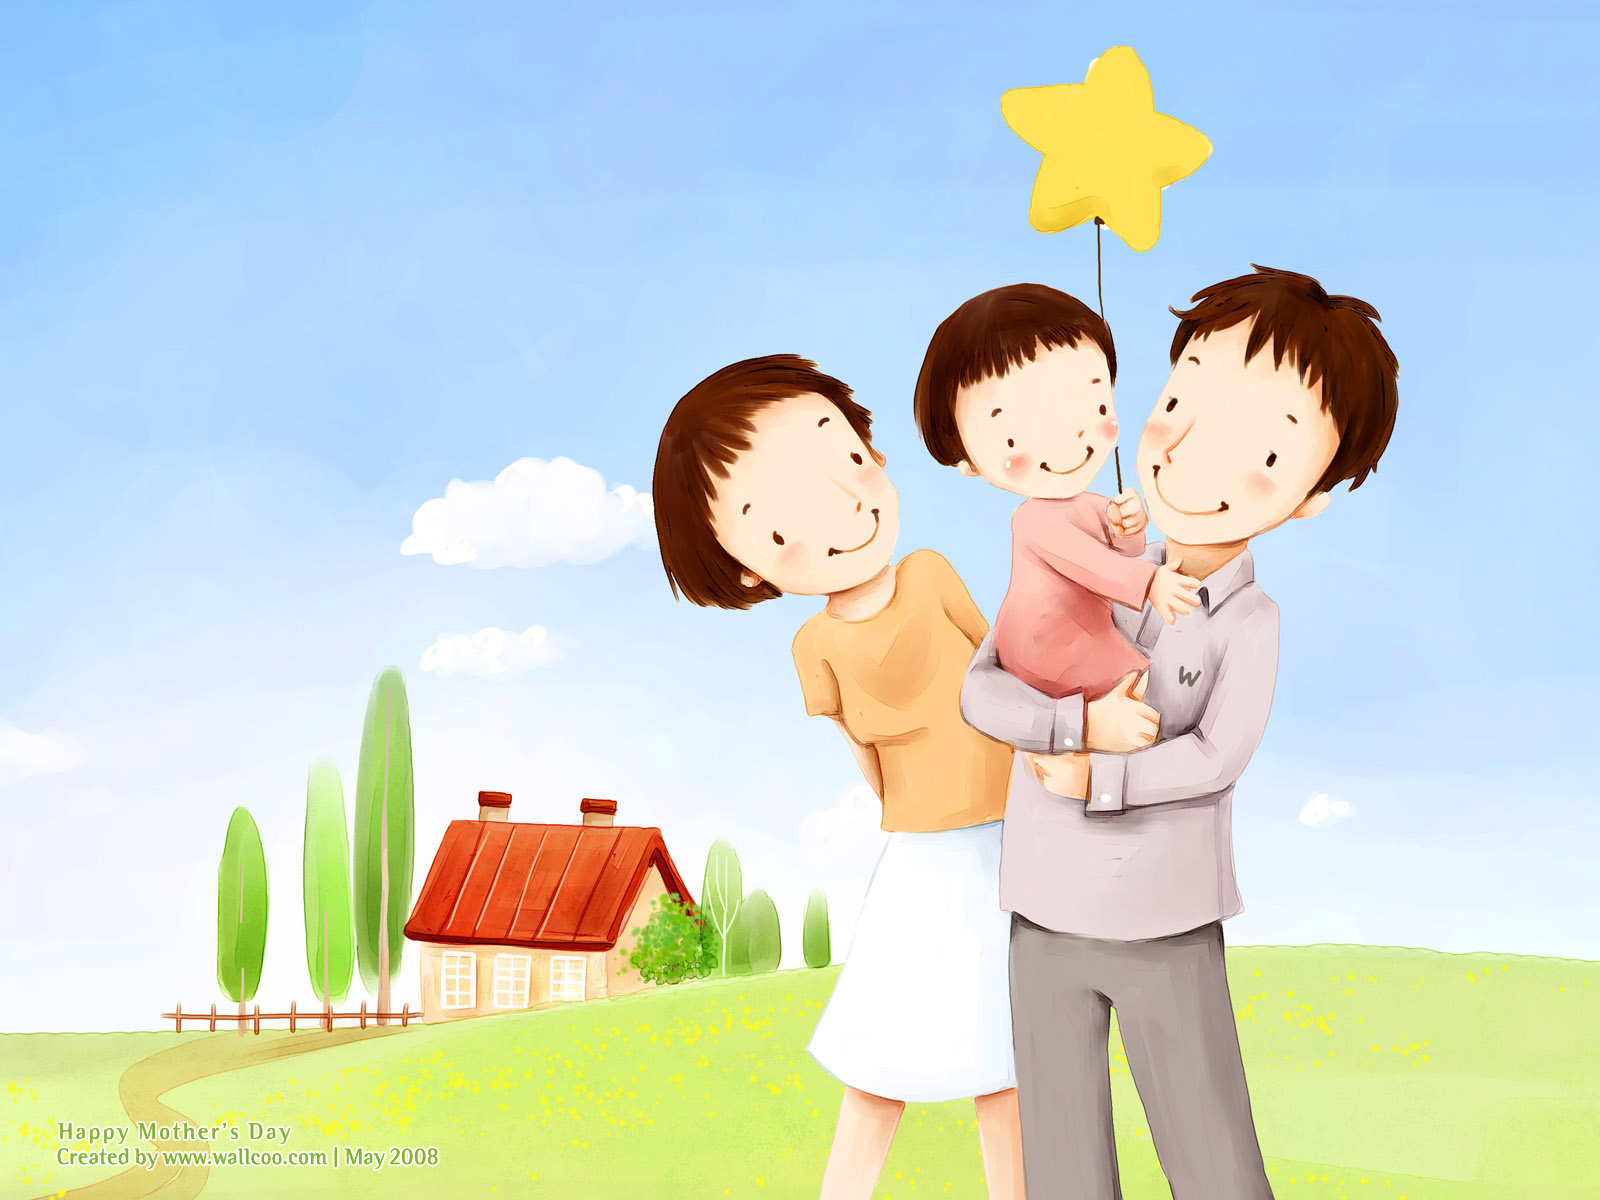 High Resolution Cartoon Illustraion Of Family Love Beautiful Family Pictures Cartoon 2558576 Hd Wallpaper Backgrounds Download